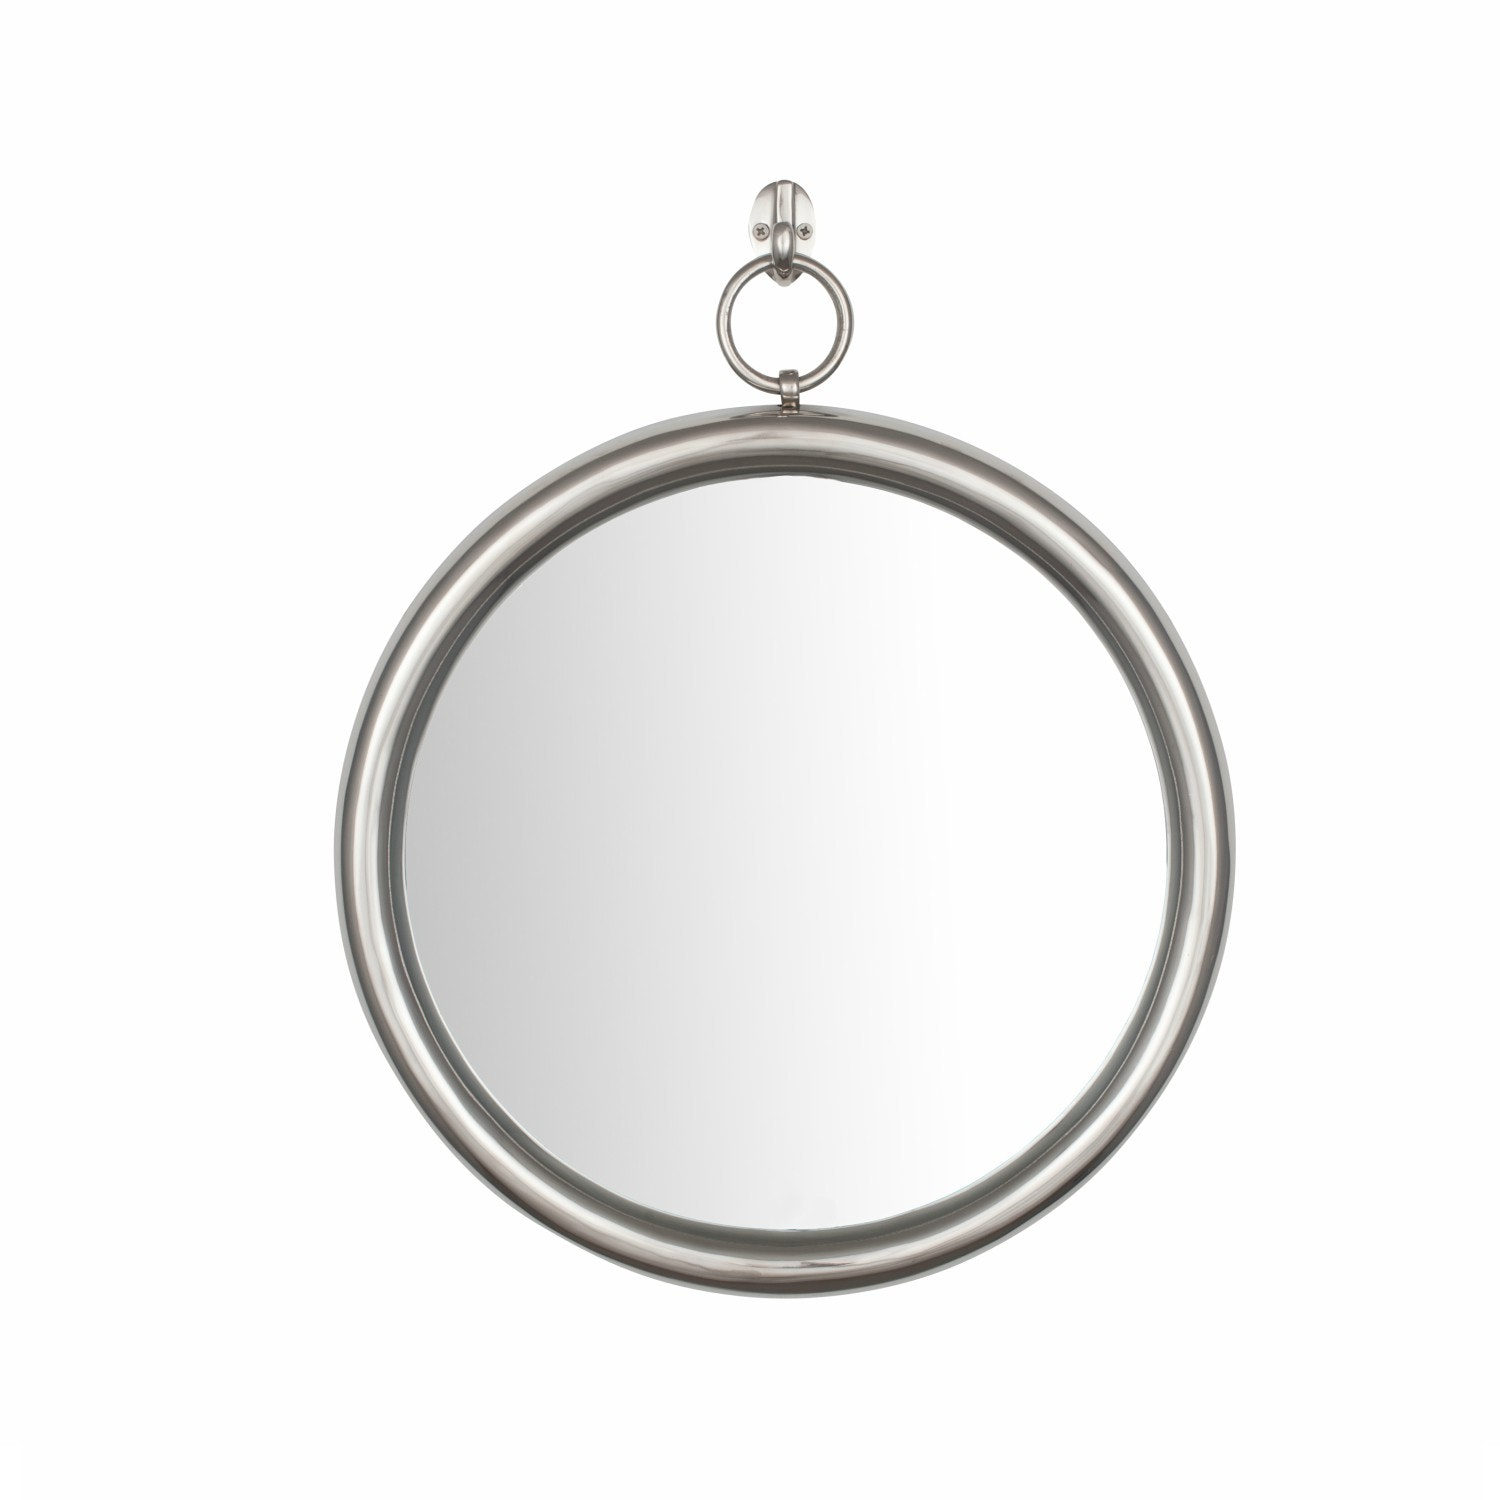 Shiny Nickel Aluminium & Glass Round Mirror